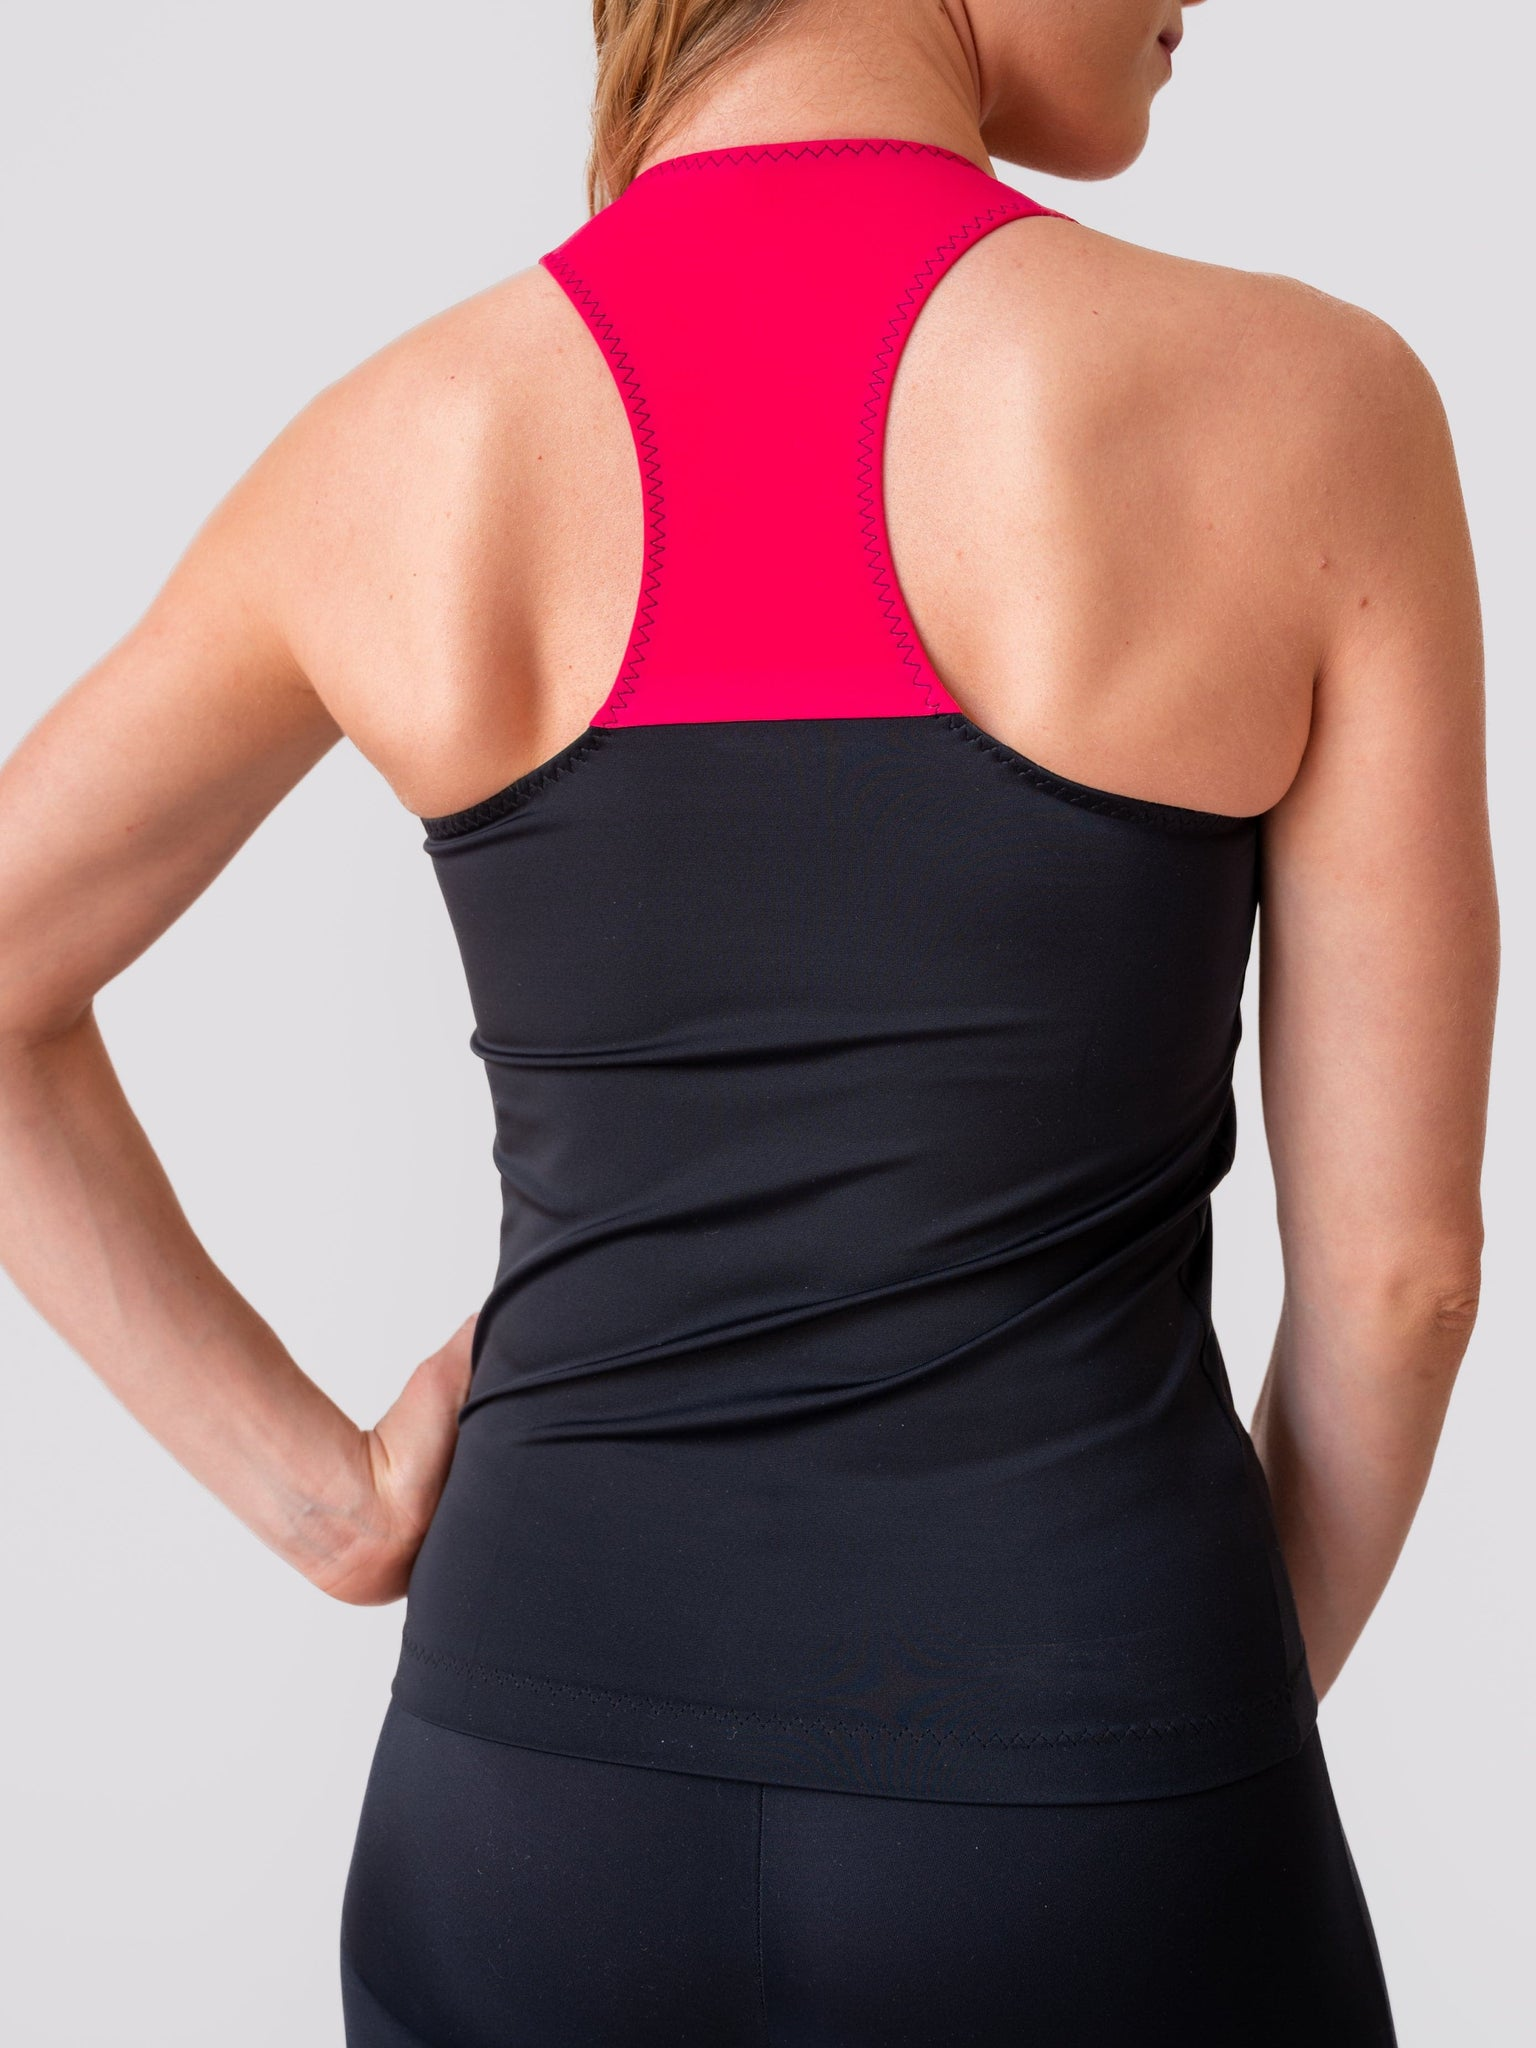 Black and fuchsia yoga and fitness tank tops for women and girls by Lena Activewear